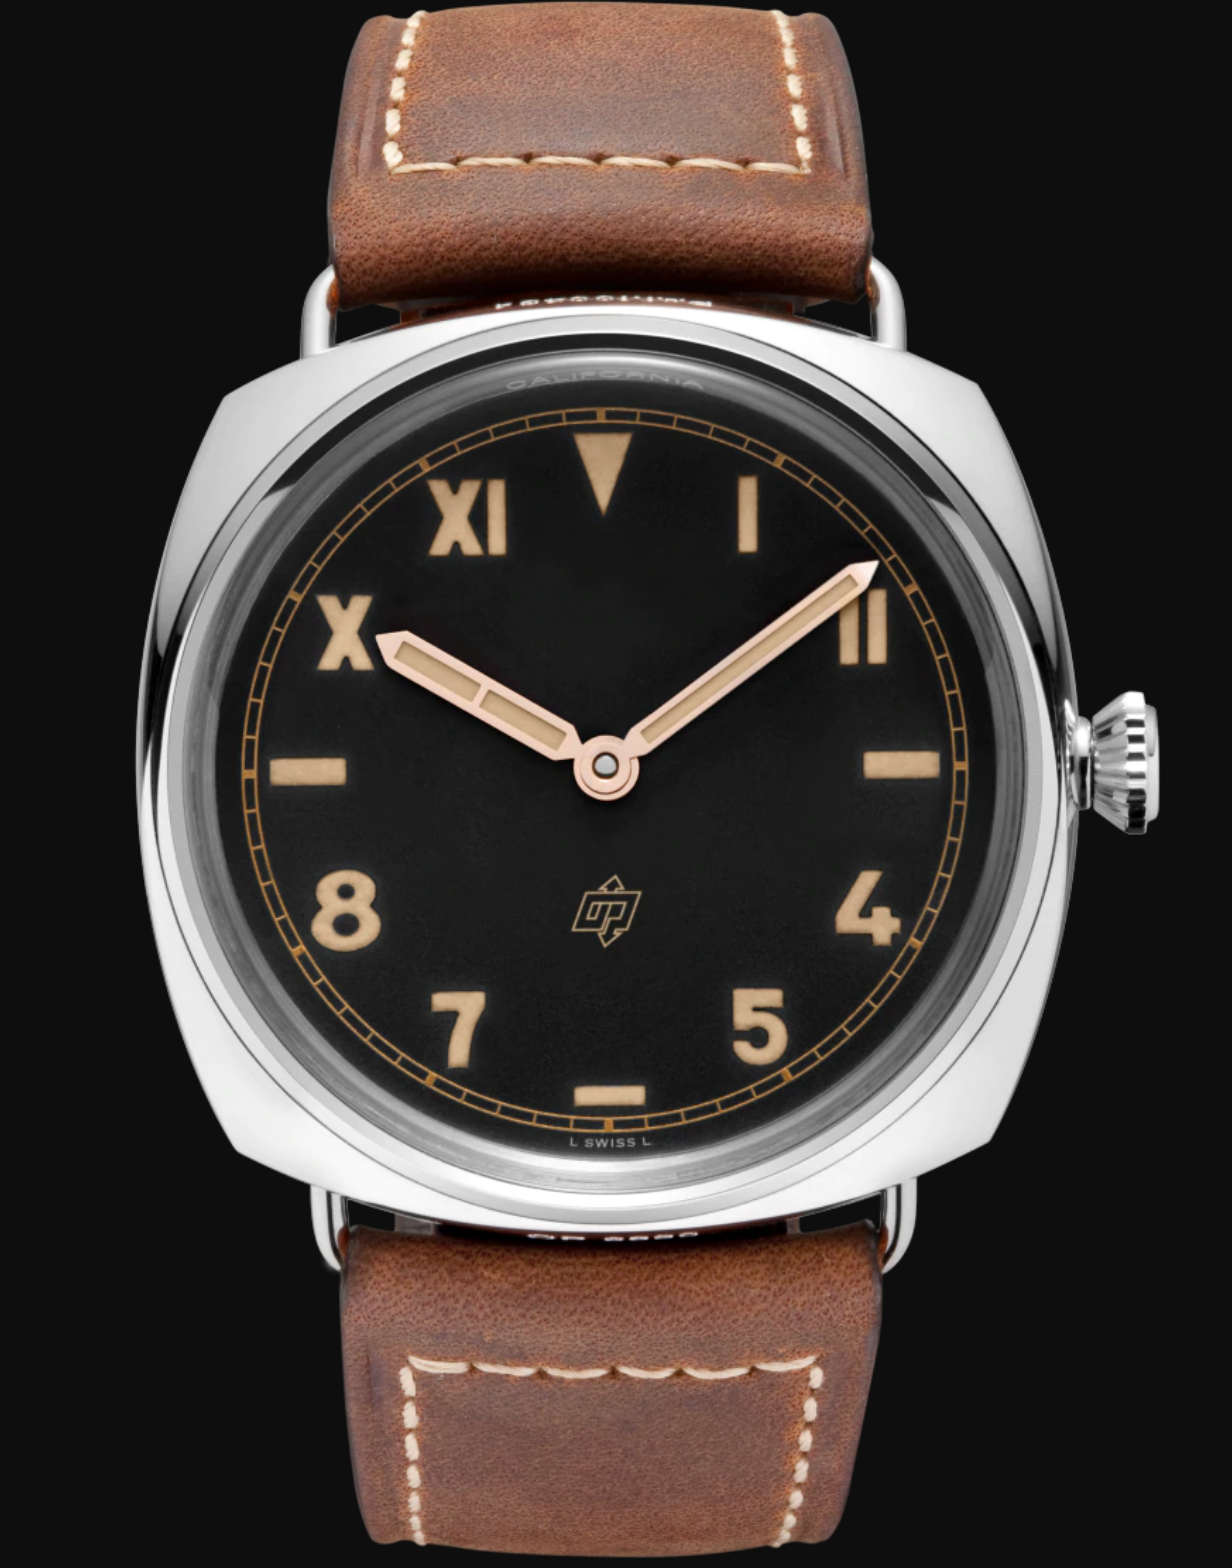 Best California dial watches